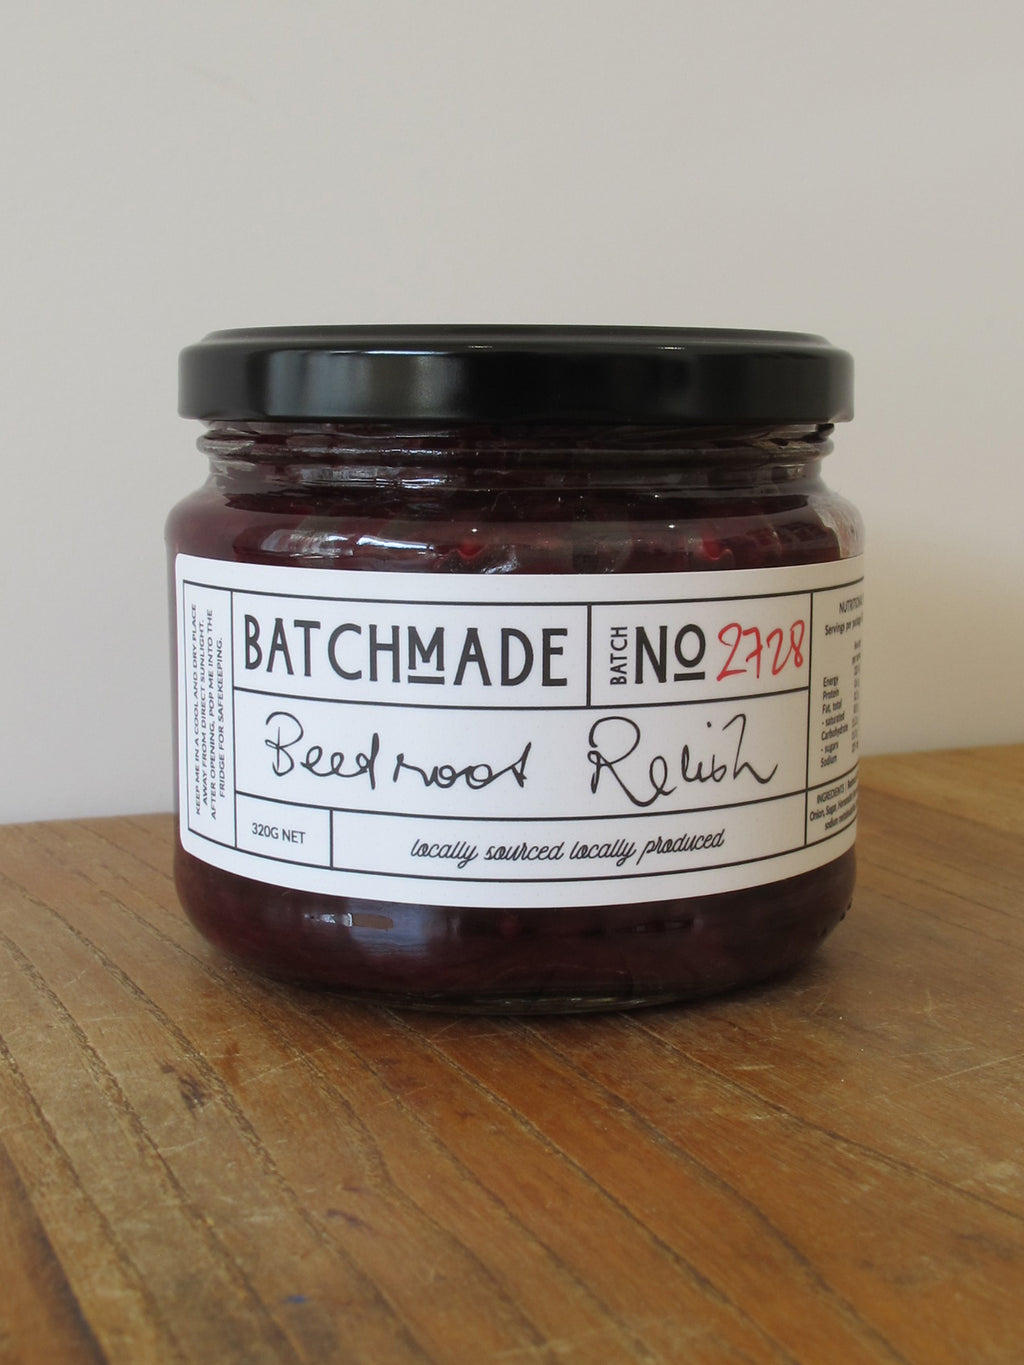 Beetroot relish jar